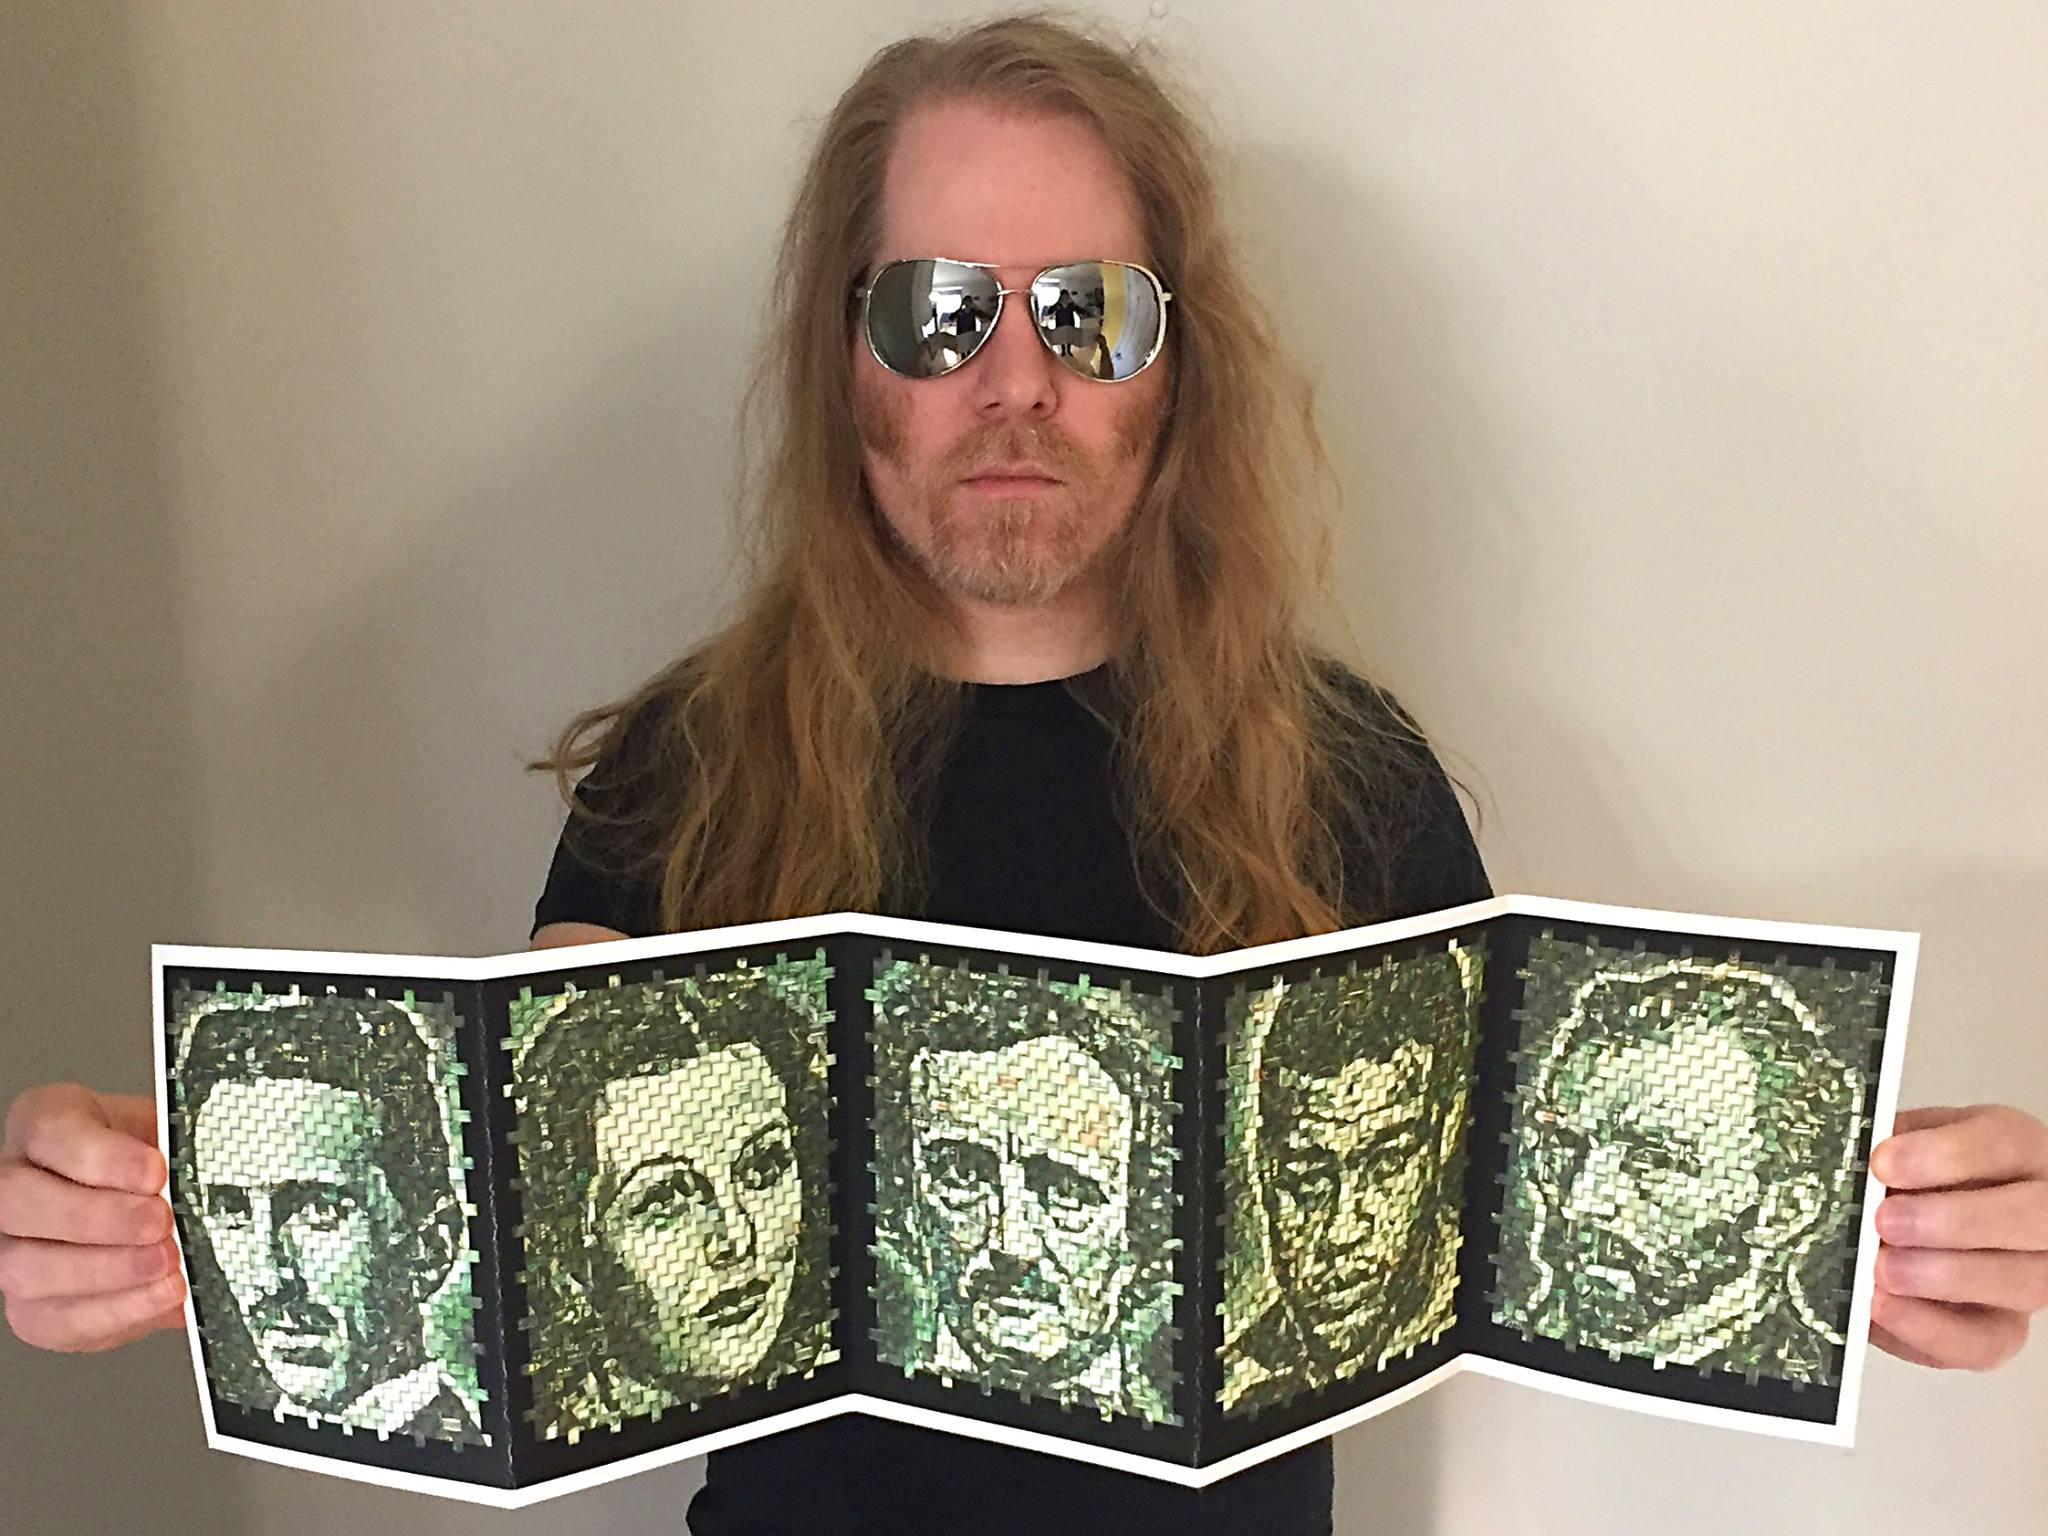 """My 2017 ArtPrize entry featuring five """"Made of Money"""" portraits. ArtPrize is """"an open, independently organized international art competition which takes place for 19 days each fall in Grand Rapids, Michigan."""" ArtPrize was created by billionaire Rick DeVos, who has contributed to many conservative political causes.  The New York Times covered my """"Made of Money"""" artwork:  """"Any artwork put into ArtPrize is going to be about ArtPrize, the DeVoses and Trump,"""" said Eric Millikin, an artist in Detroit whose entry, """"Made of Money,"""" used a weave of actual dollar bills and digital manipulation to produce portraits of accomplished people who died poor. """"I've always been conflicted about participating because of the DeVoses, but this year with Betsy DeVos in the federal government, it was a conflict I had to address.""""  Full article here:https://www.nytimes.com/2017/09/27/arts/design/artprize-michigan-betsy-devos-donald-trump.html"""